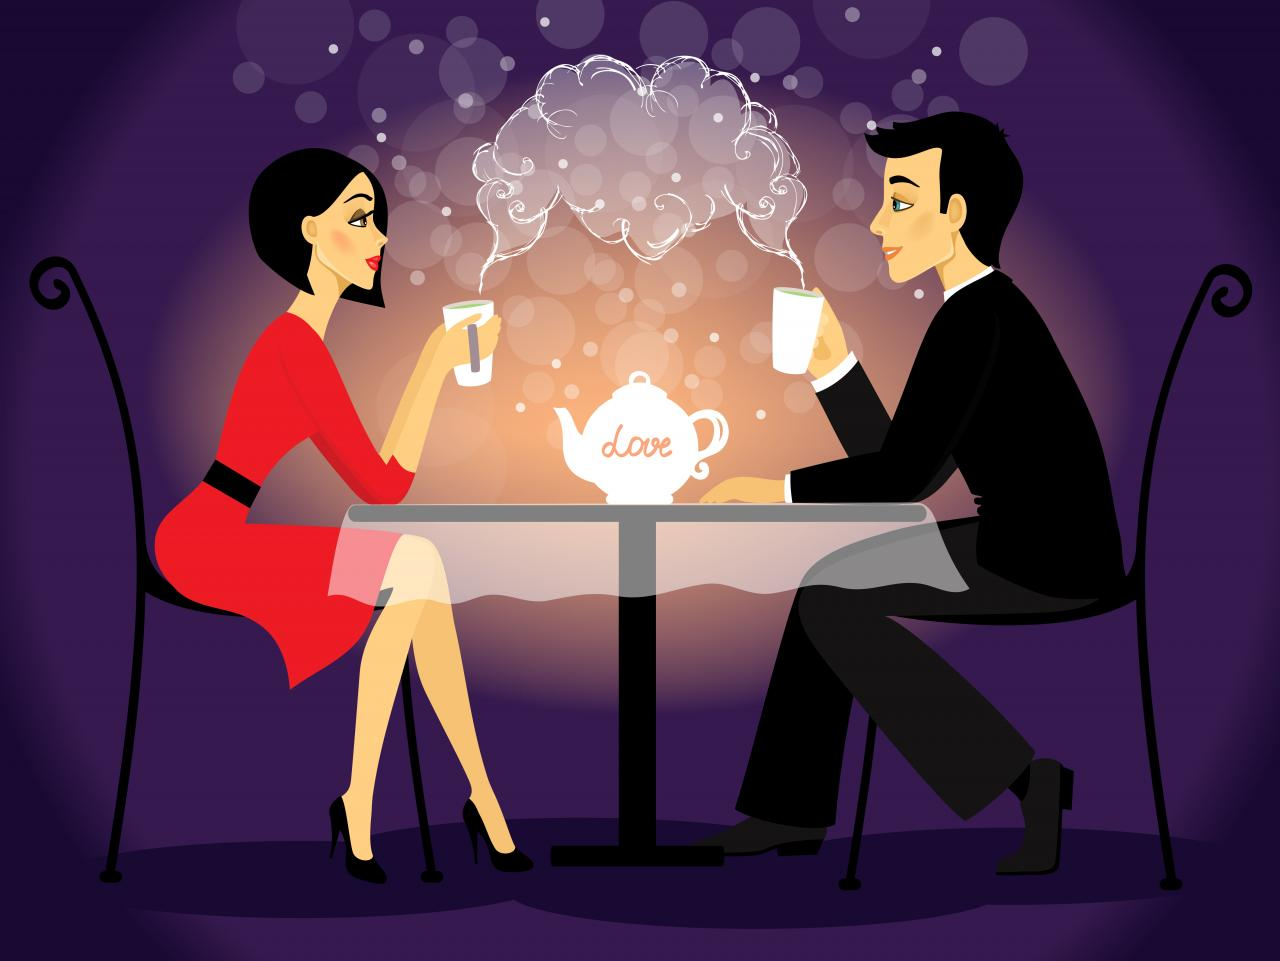 speed dating romania Meet your next date or soulmate 😍 chat, flirt & match online with over 20 million like-minded singles 100% free dating 30 second signup mingle2.